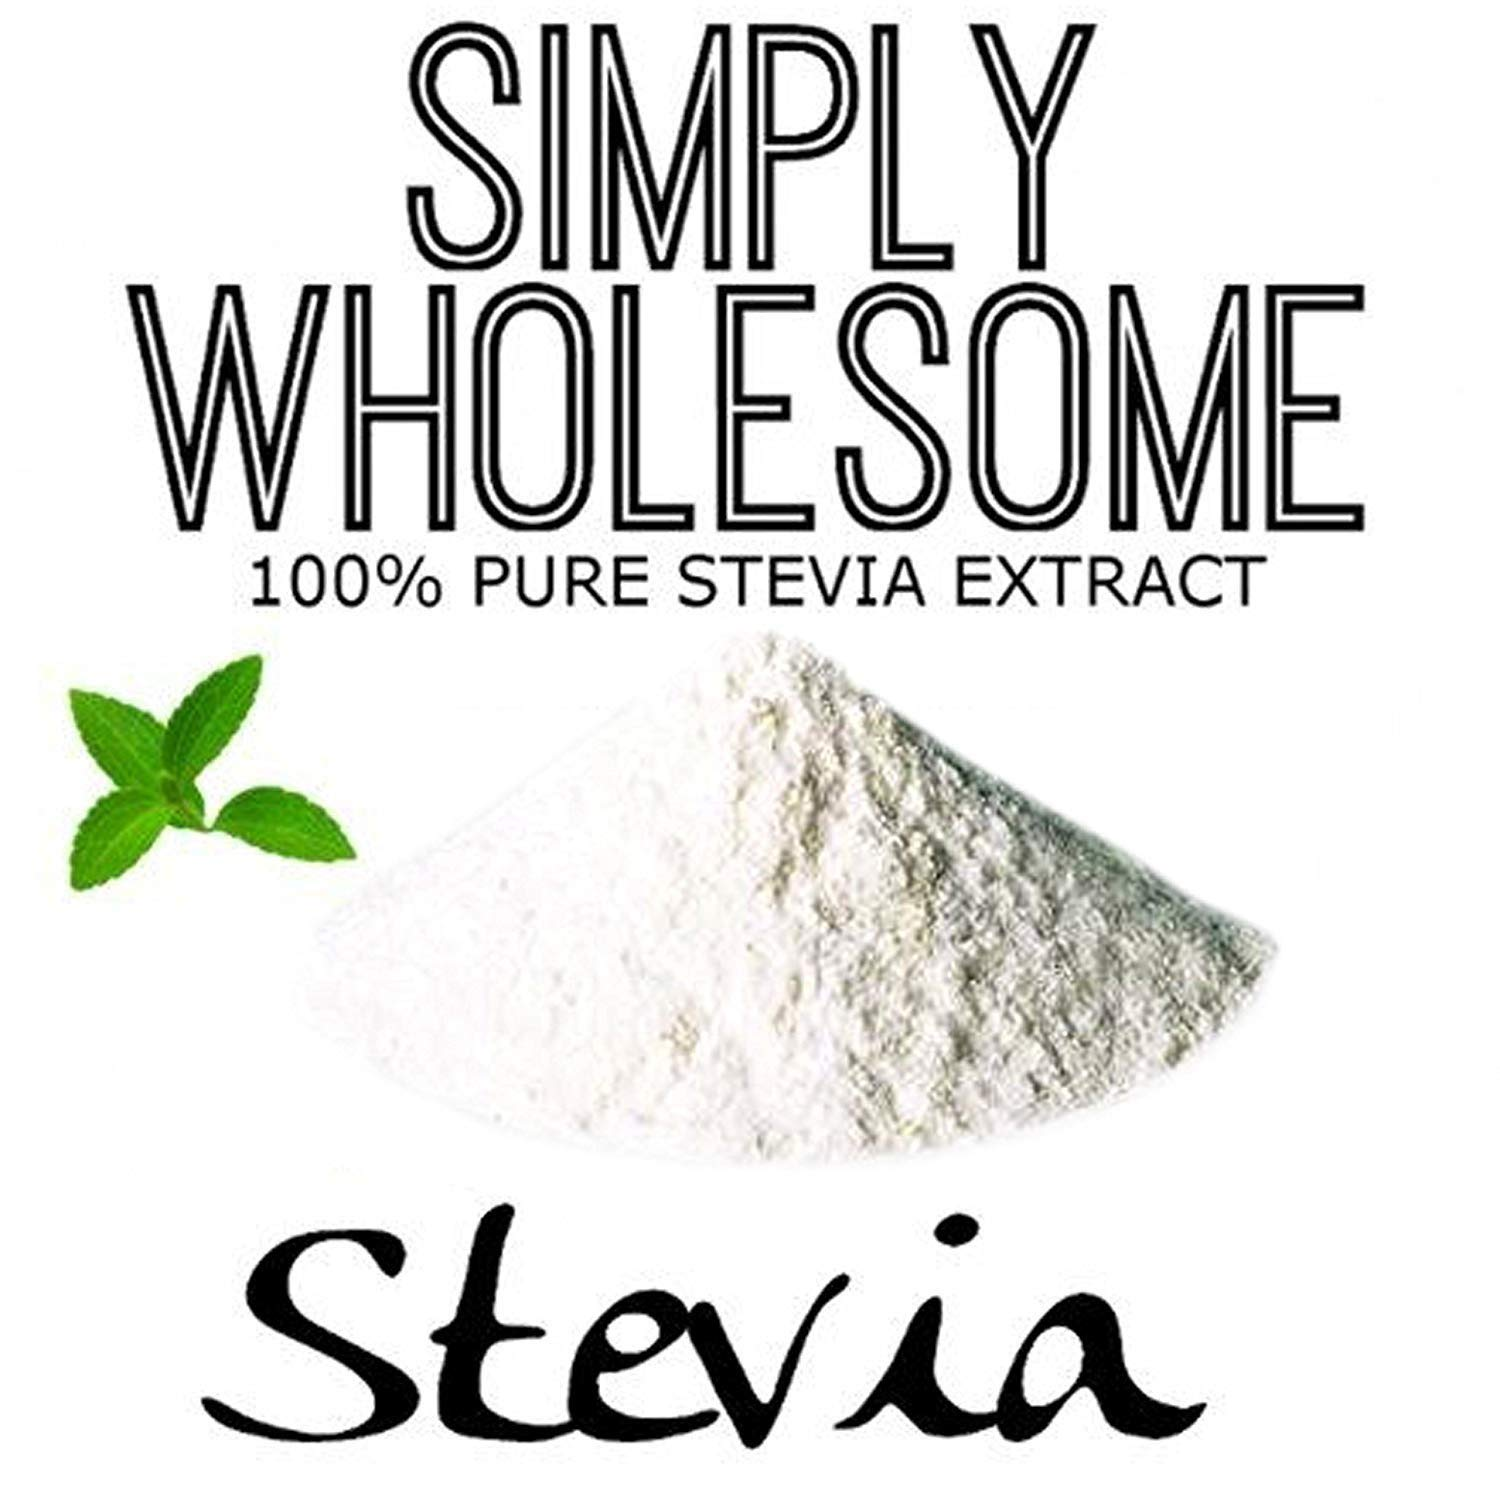 Pure Stevia Powder Extract Sweetener - Zero Calorie Sugar Free Substitute Alternatives - No Artificial Ingredients (2,250 Servings)